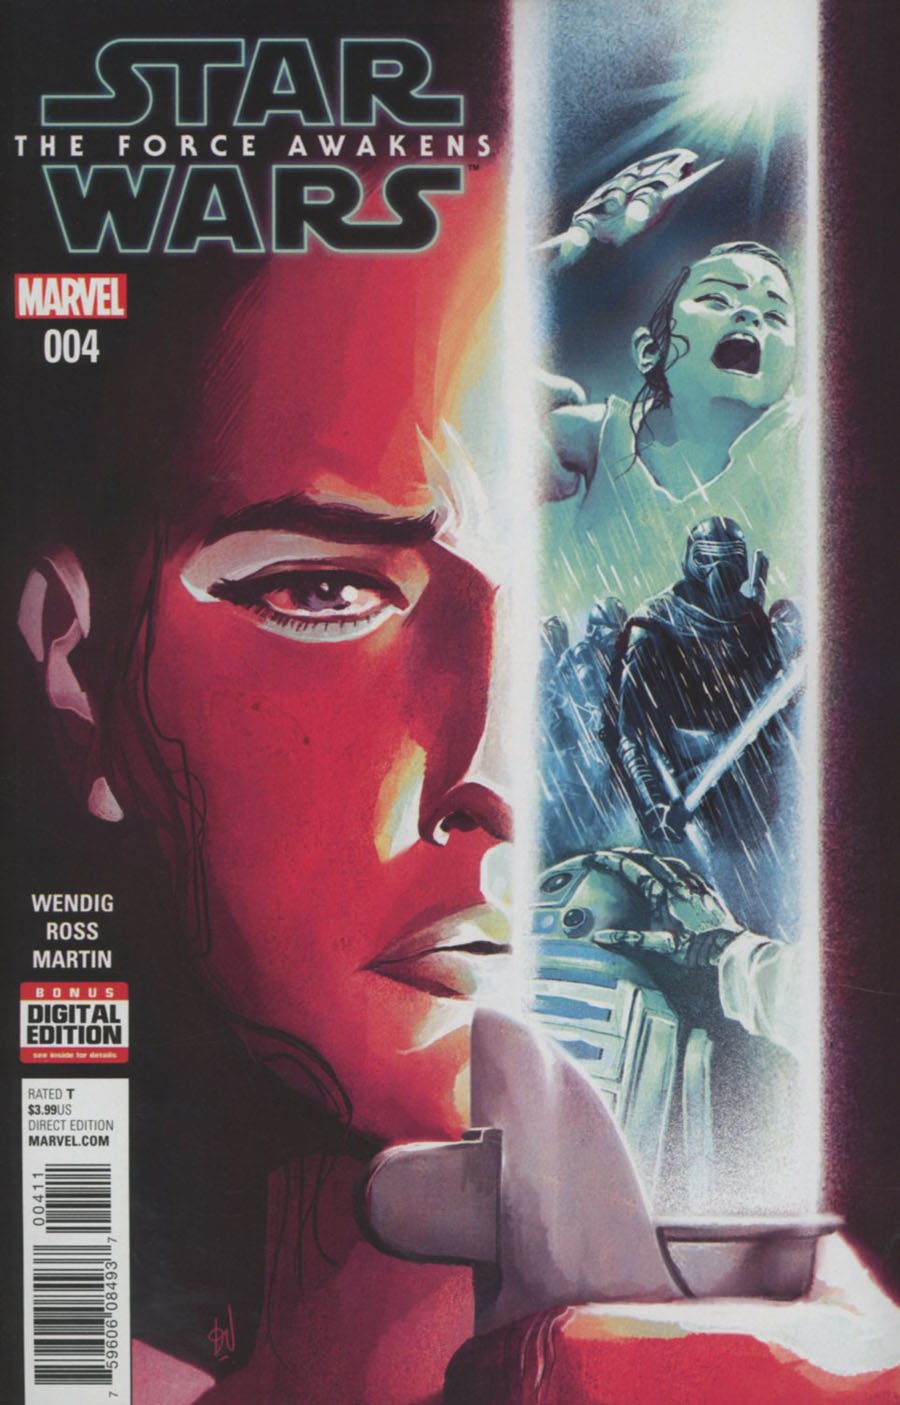 Star Wars Episode VII The Force Awakens Adaptation #4 Cover A Regular Mike Del Mundo Cover